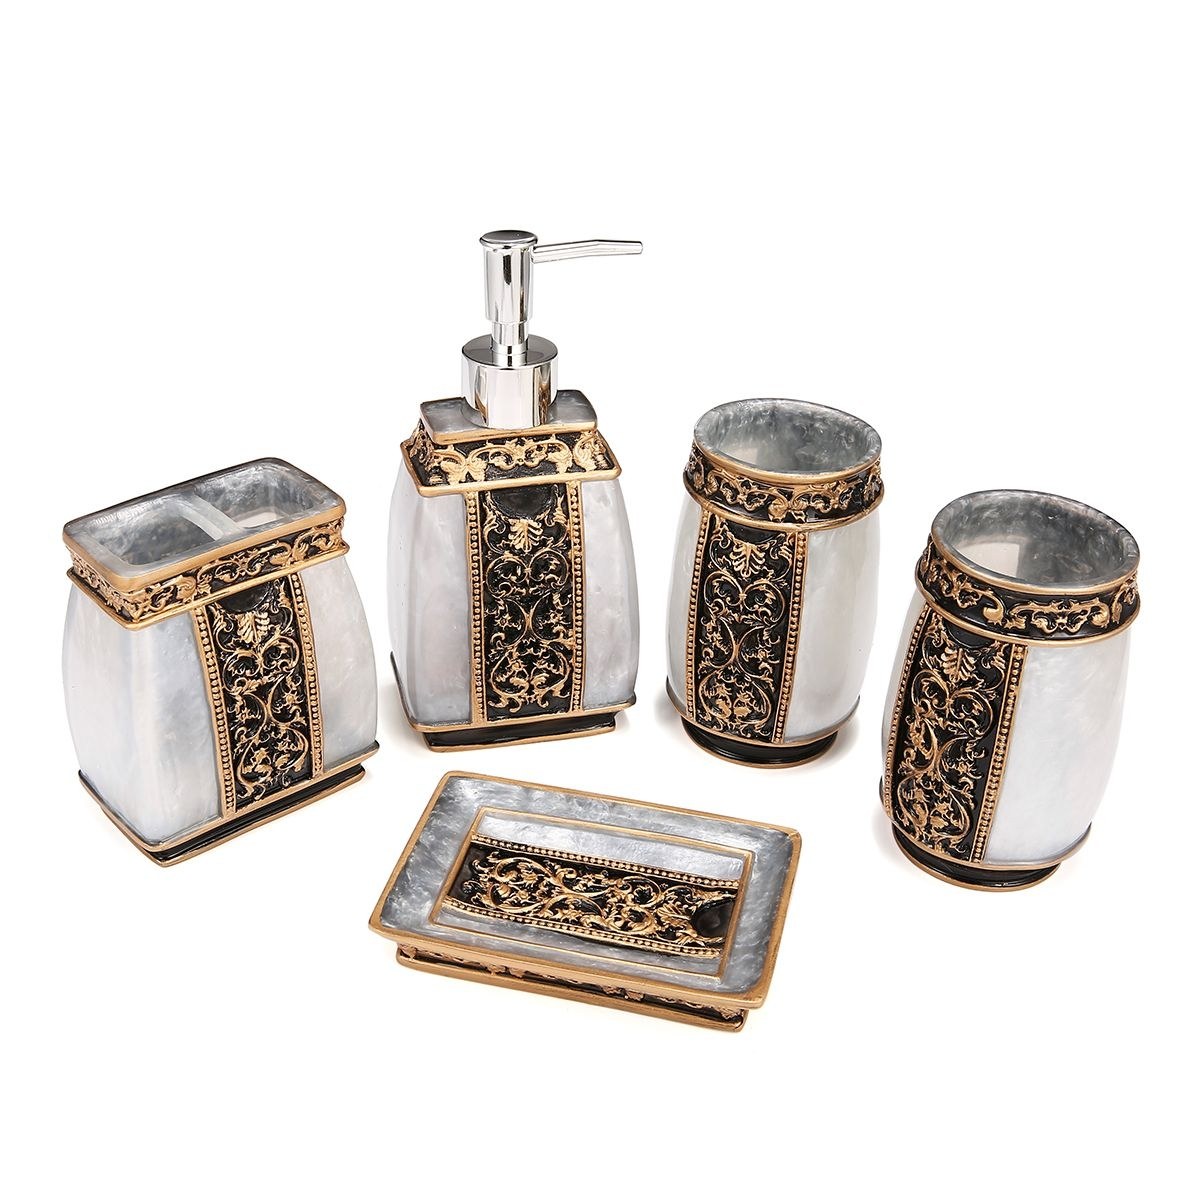 5 Piece Bathroom Accessories Set Bathroom Set Features Soap Dispenser Toothbrush Holder